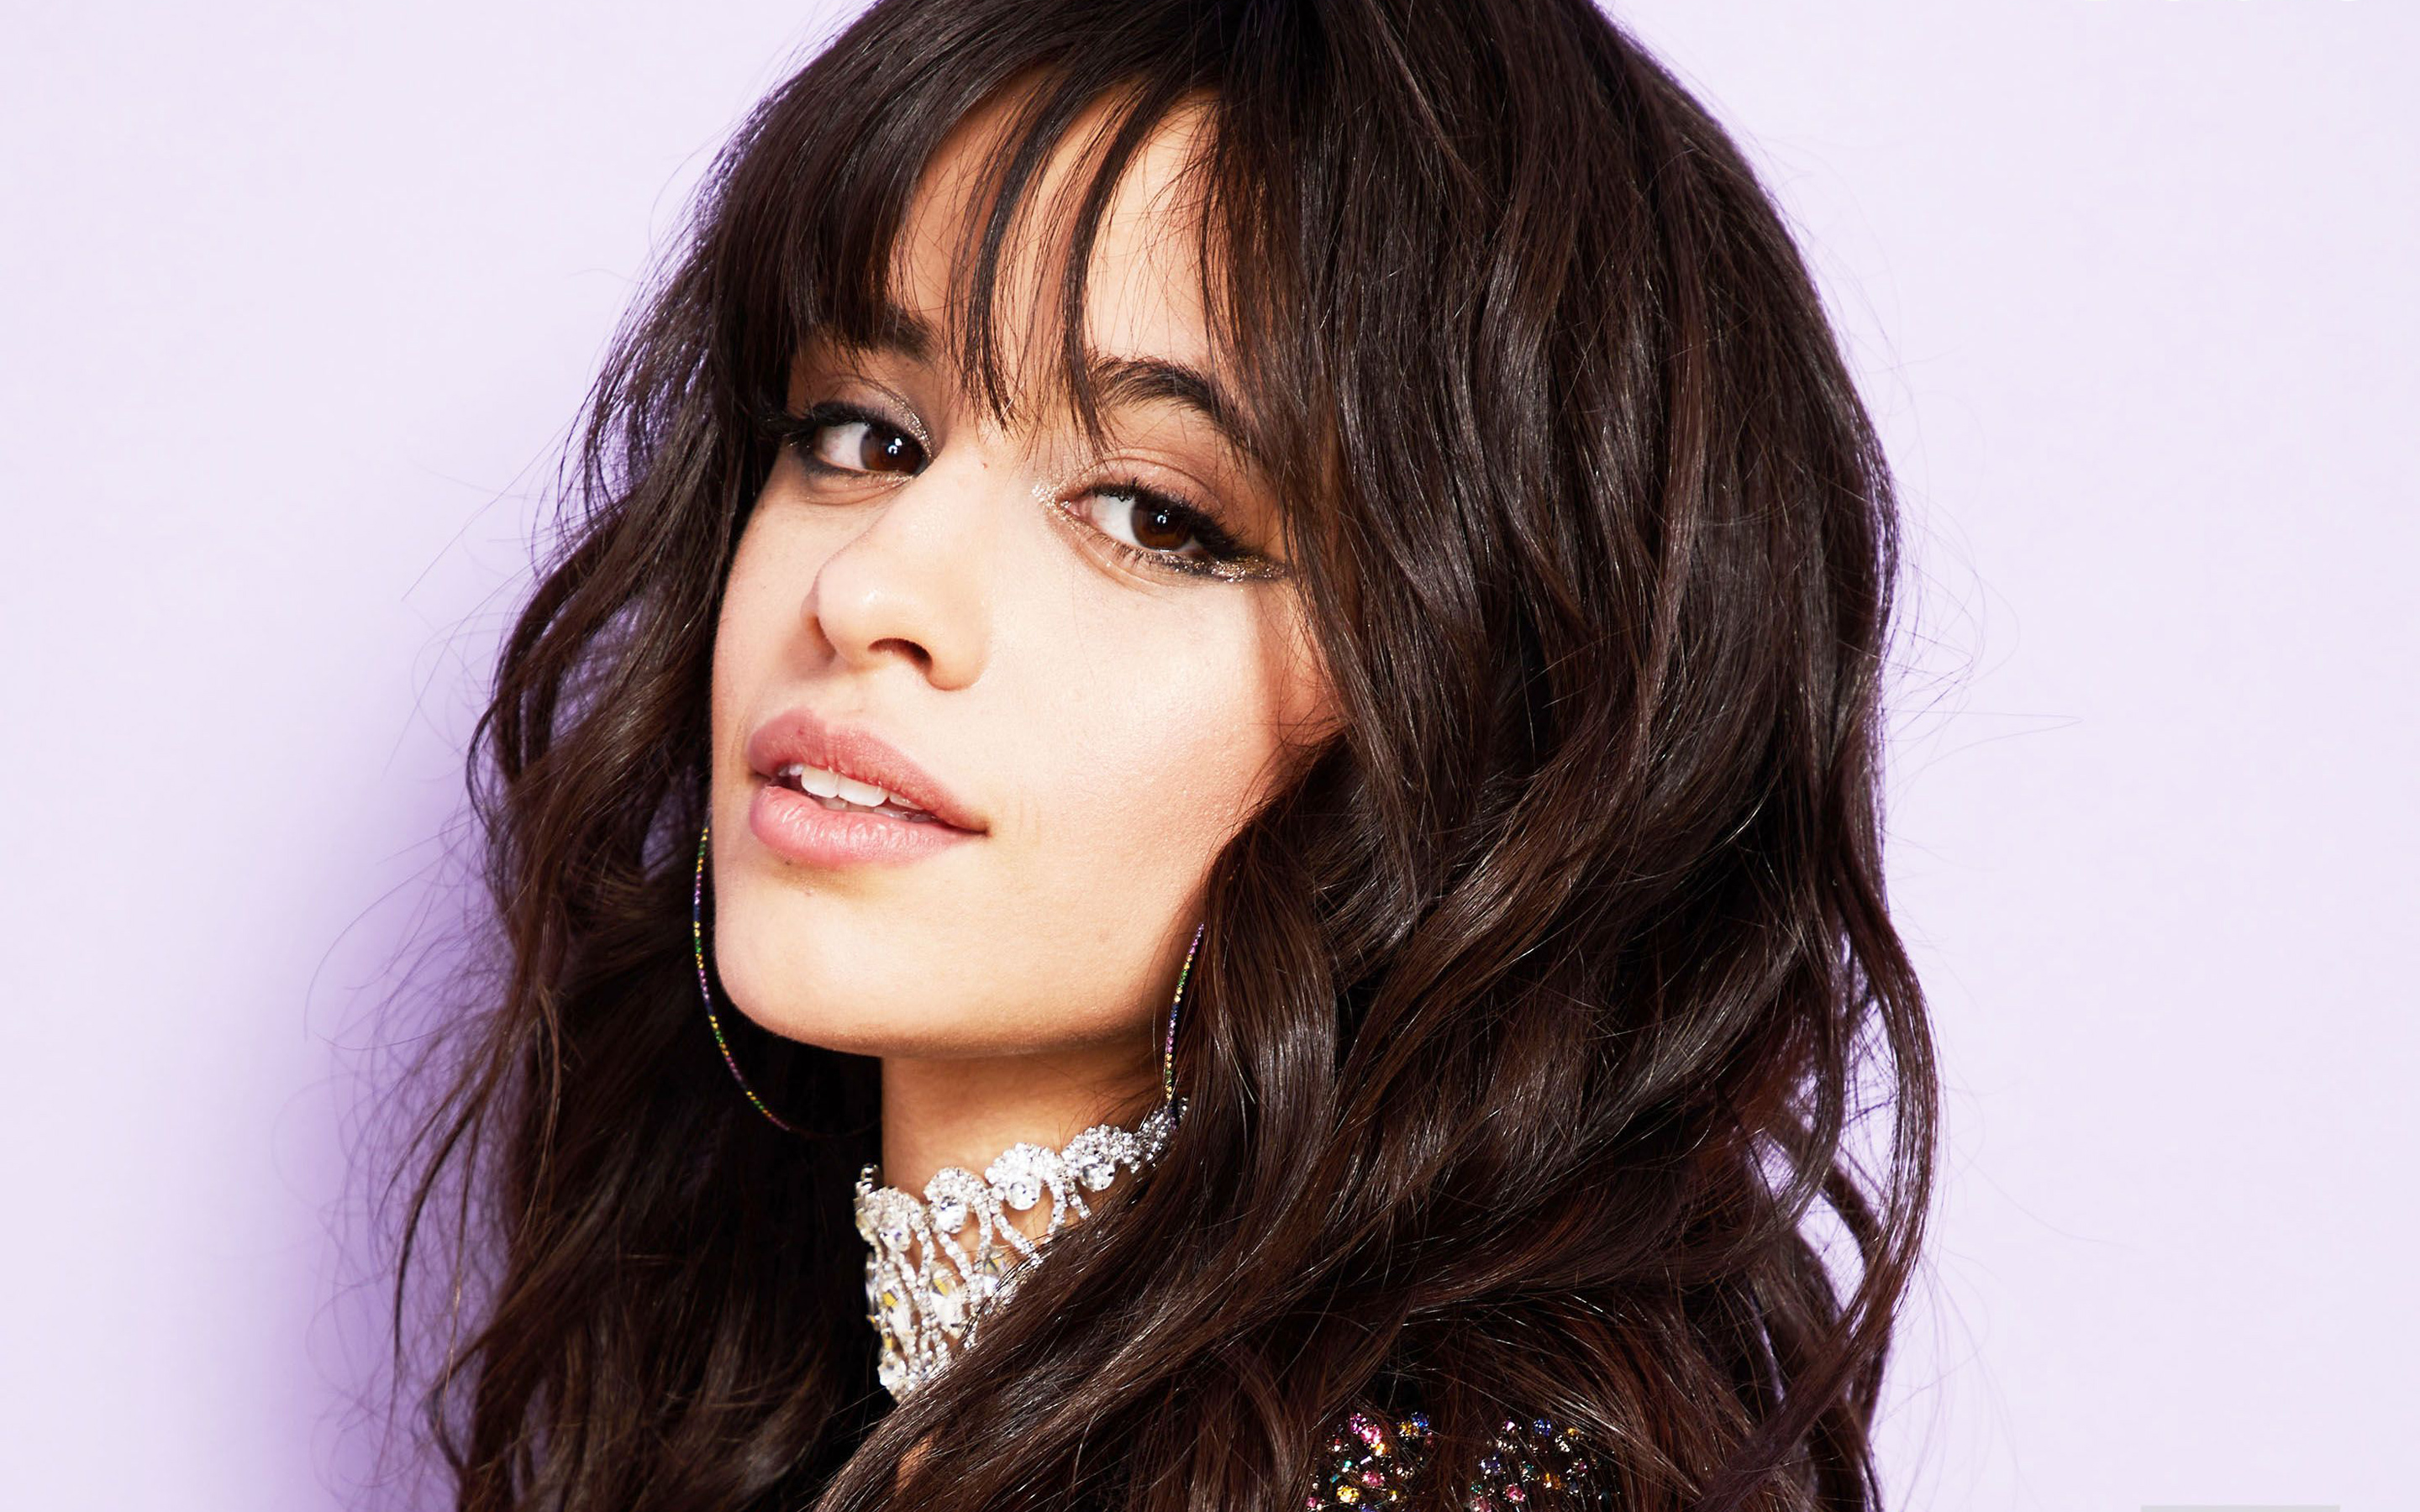 Camila Cabello Face Wallpaper 64582